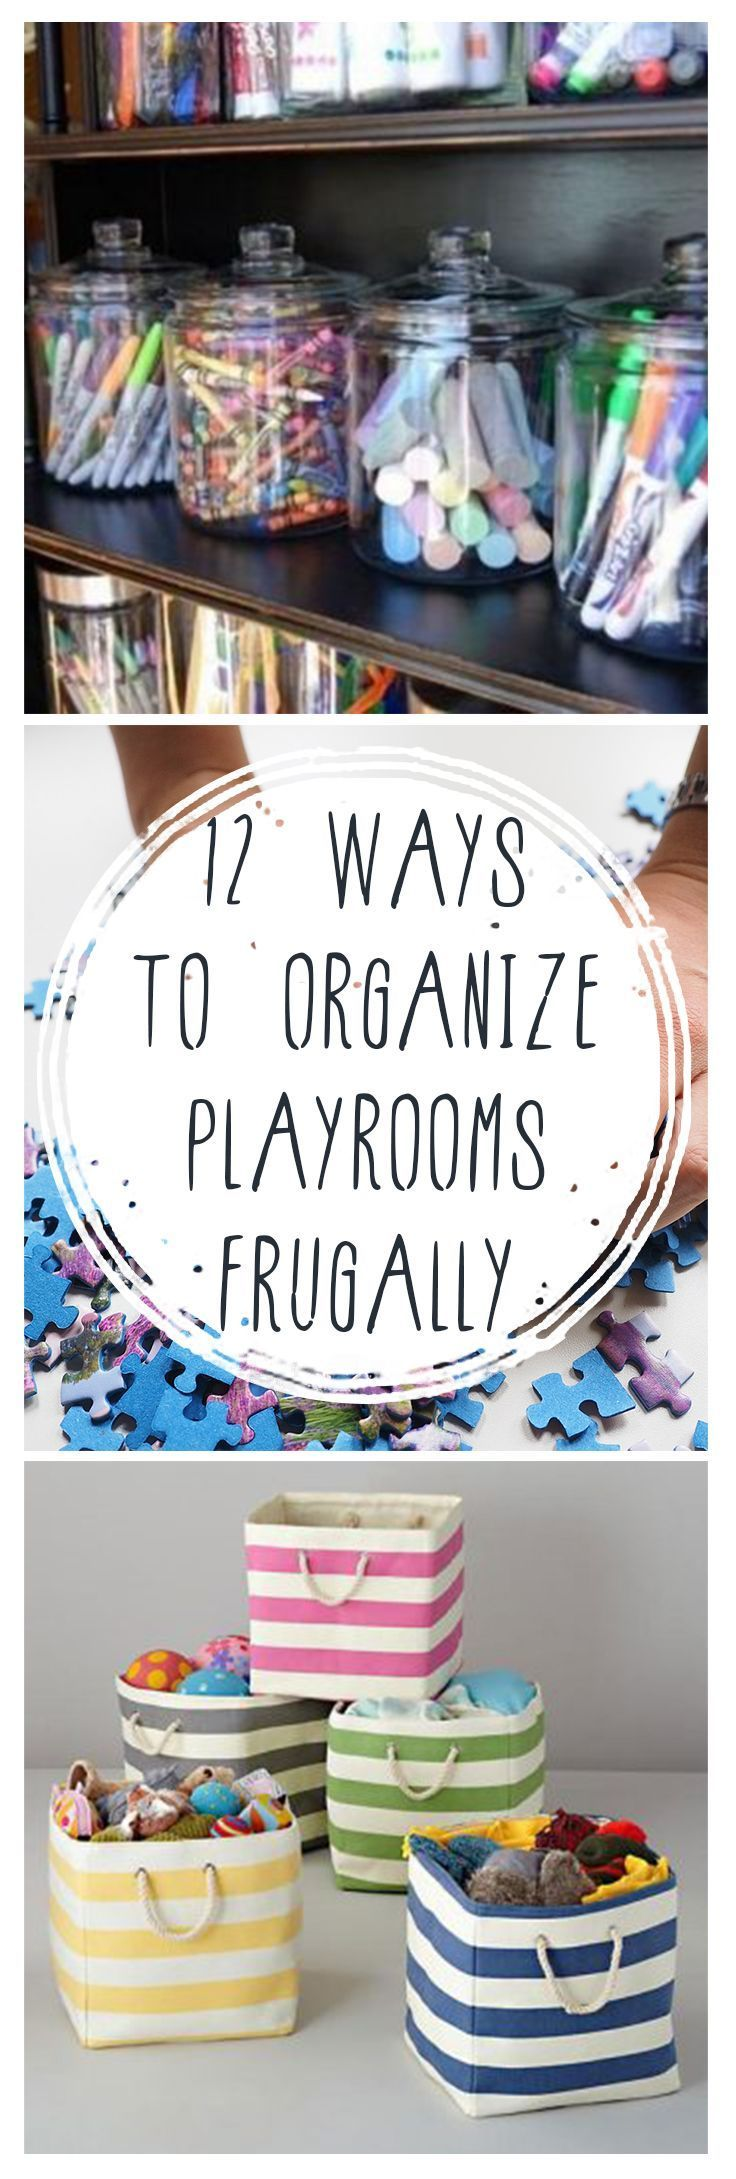 Playroom organization, organizing playrooms, how to organize playrooms, popular pin, DIY playroom organization, playroom storage.